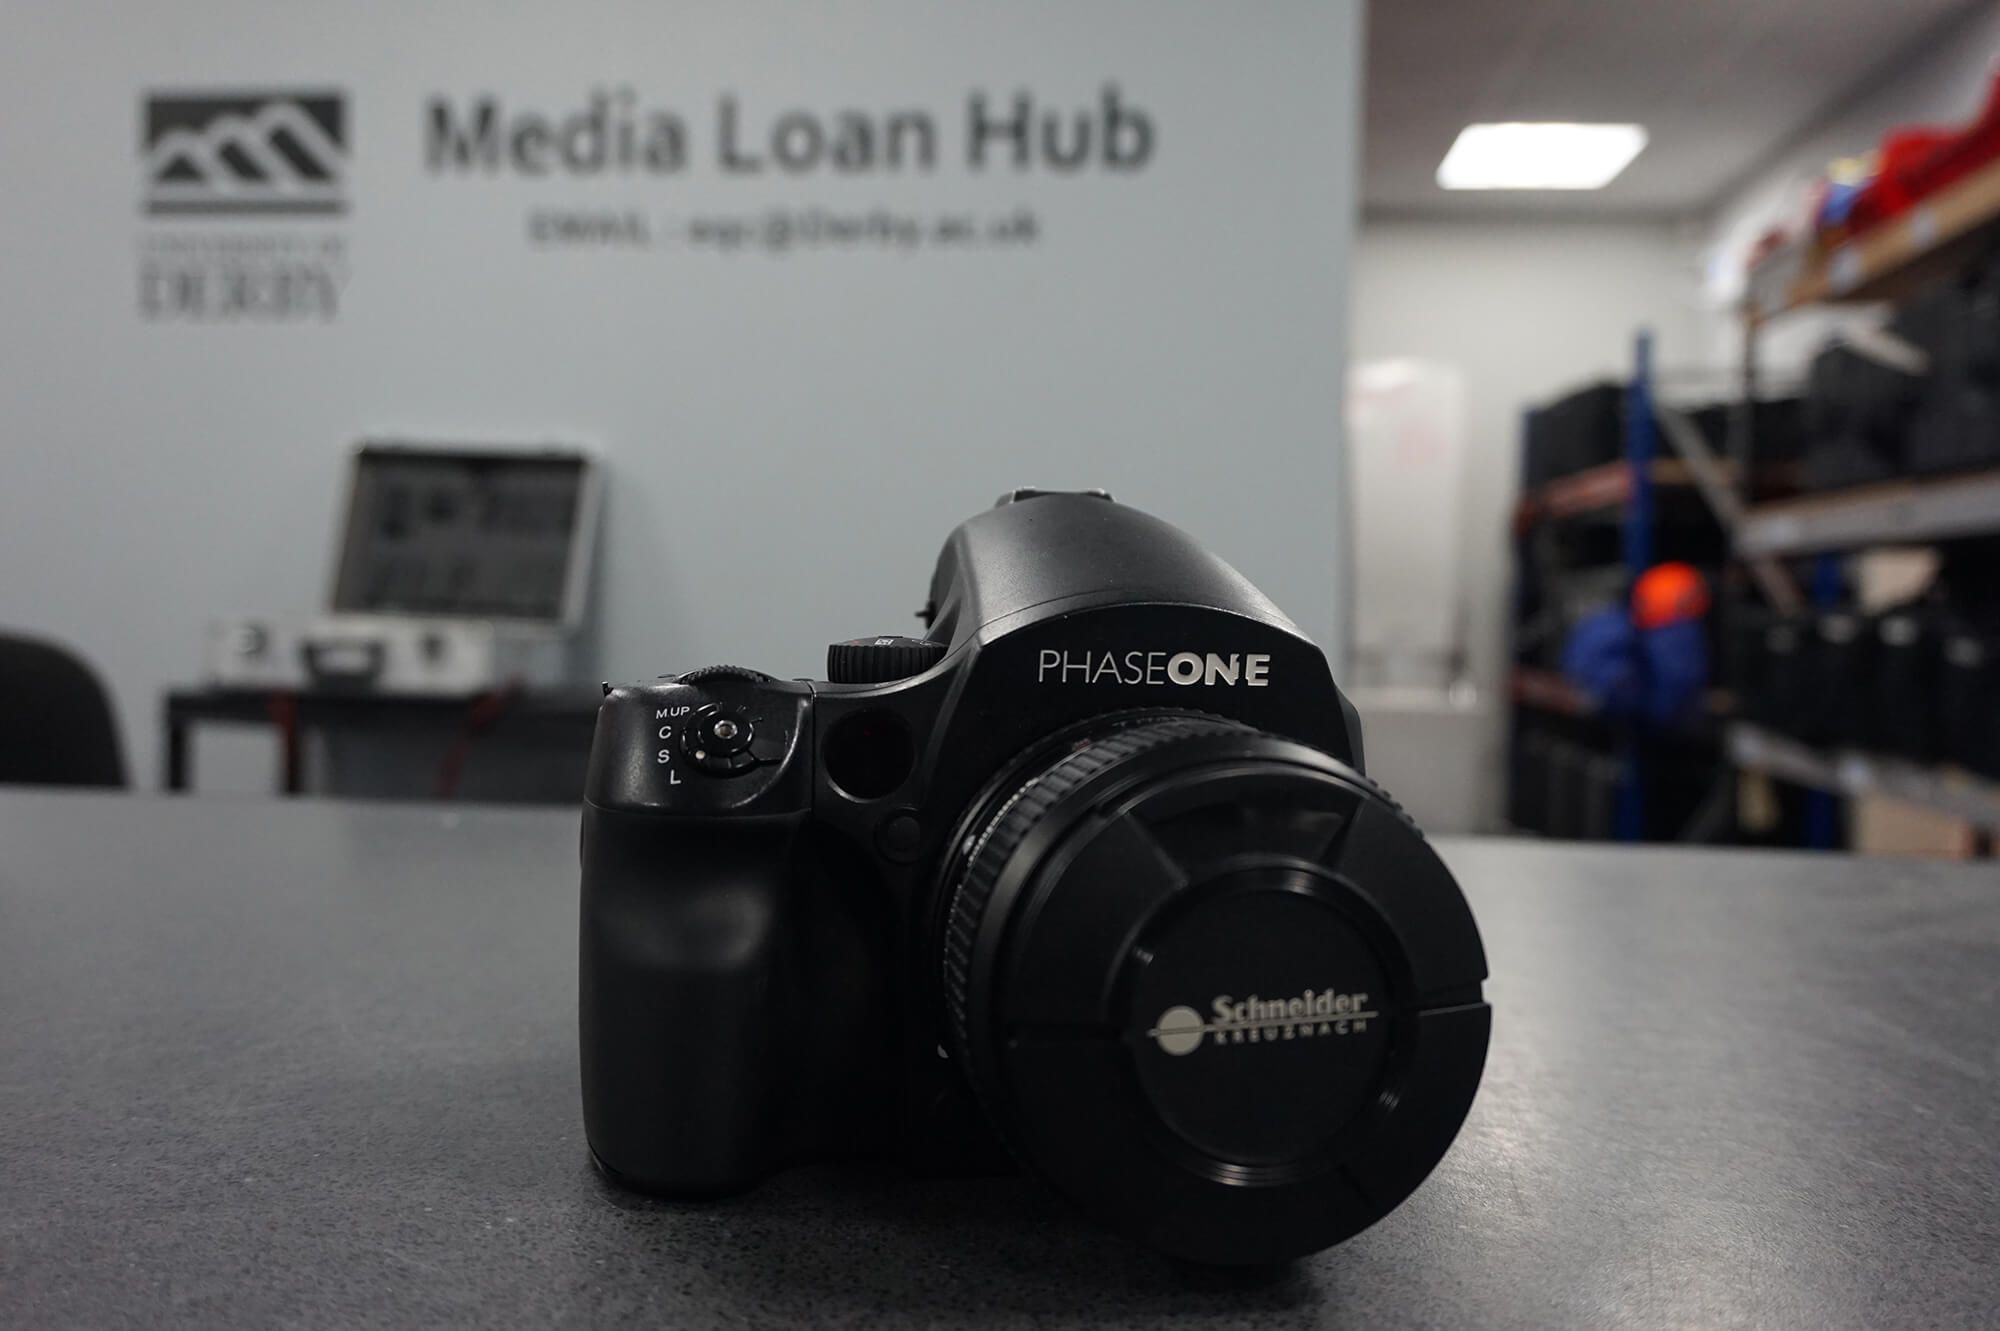 The media loan hub at our Markeaton Street site